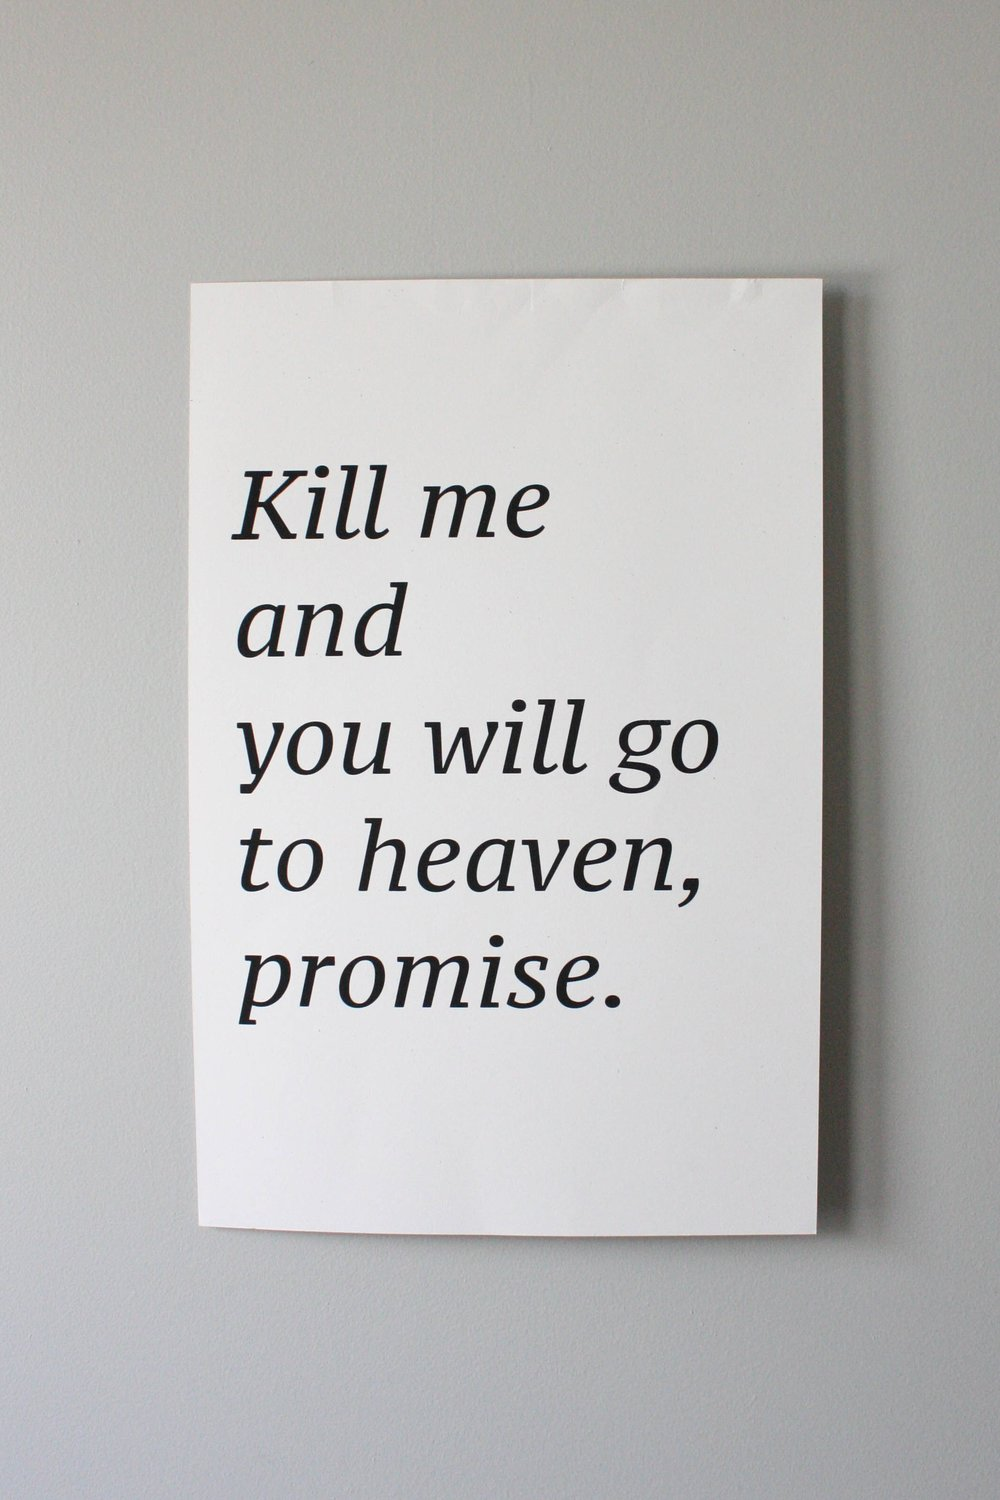 """Kill me and you will go to heaven, promise."" Print  Printed on 13x19, 100 pound French speckletone paper.  Created in Midtown Detroit at Ocelot Community Print Shop."